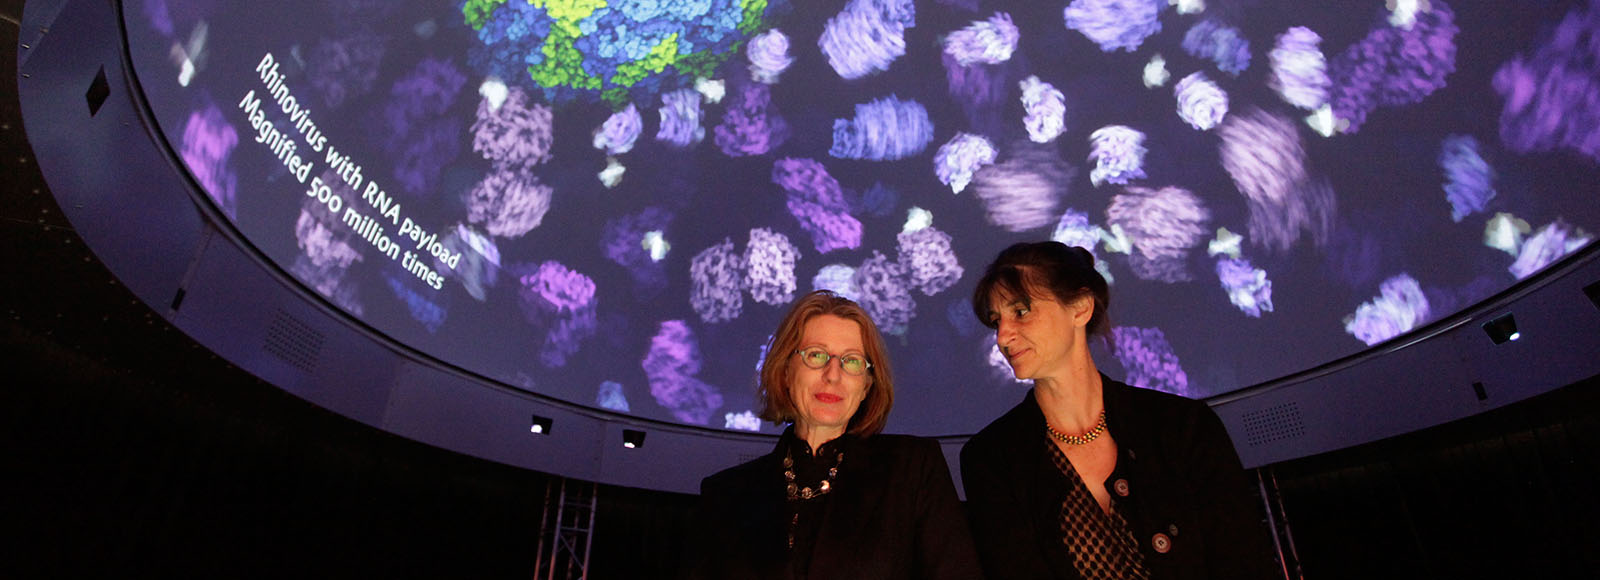 EPIC's research leaders Professors Sarah Kenderdine (left) and Lindy Rae in DomeLab beneath a visualisation of Rhinovirus with RNA payload magnified 500 million times. Animation showing in DomeLab by Drew Berry. Photo: Andy Baker